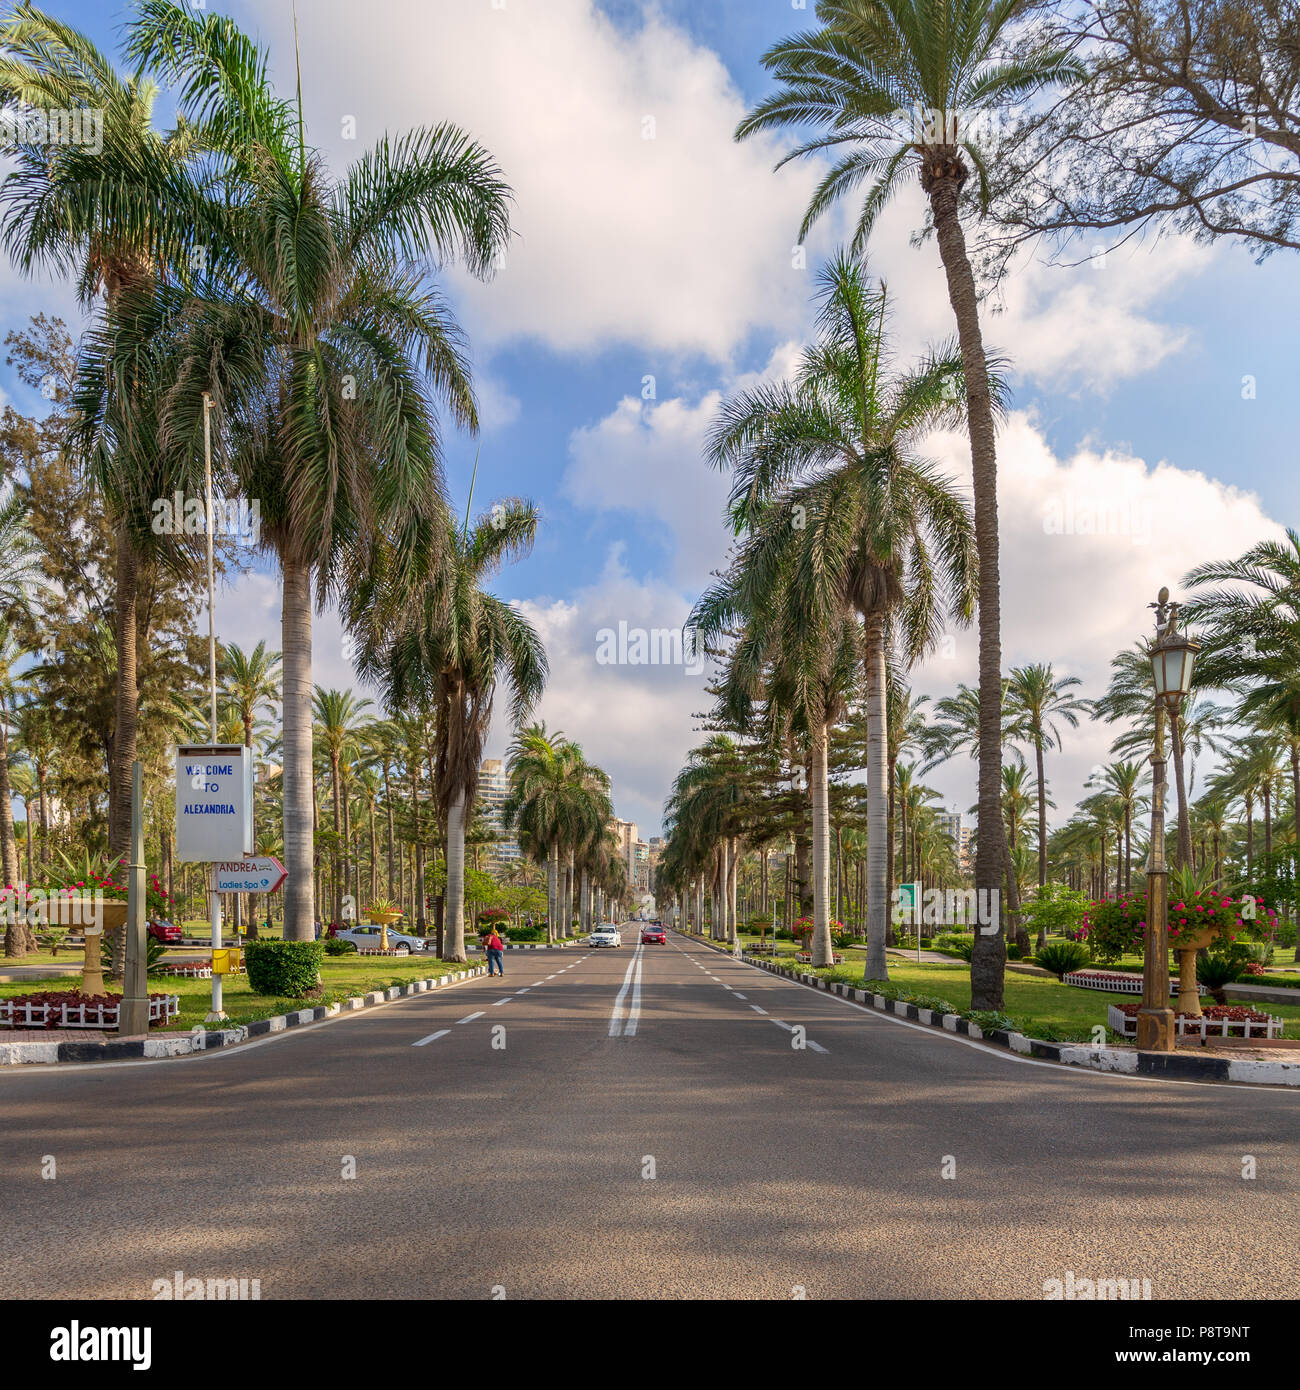 Cairo, Egypt - May 12 2018: Asphalt road framed by trees and palm trees with partly cloudy sky in a morning summer day at Montana public park - Stock Image